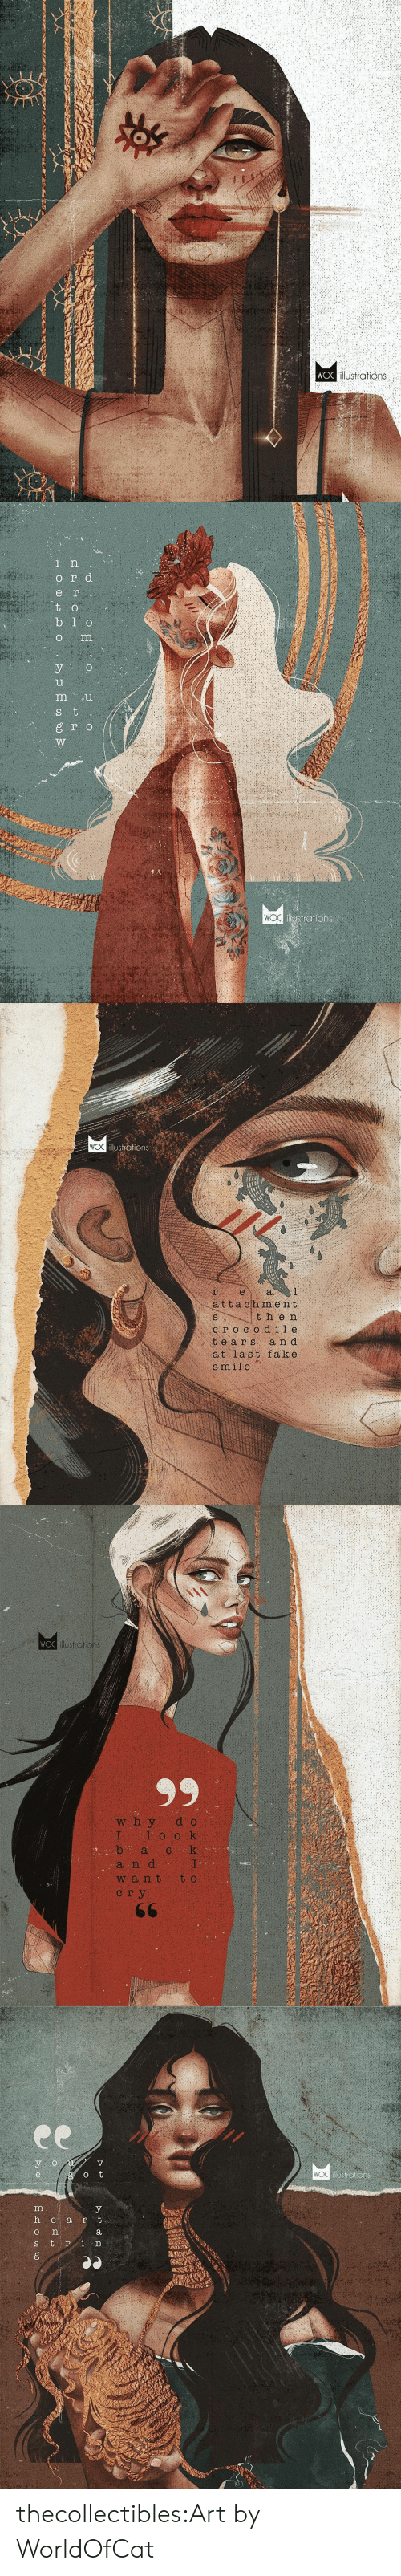 Tri: WOC illustrations   ег.  t o  b 1 o  о  о  8 го  strations  WOC  ИИАНА  Ее  . ВЕЯ 0о  - Н О Ф   WO illustiations  a  е.  attach ment  then  сгосоd ile  tears  a n d  at last fake  smile   WOO illostrations  99  w h y  I  b а  d o  1ооk  k  I.  t o  С  a n d  W a nt  сгу  66  ДИЗ  у к  мно   ее  illustrations  e  h е а r t  S tri thecollectibles:Art by  WorldOfCat